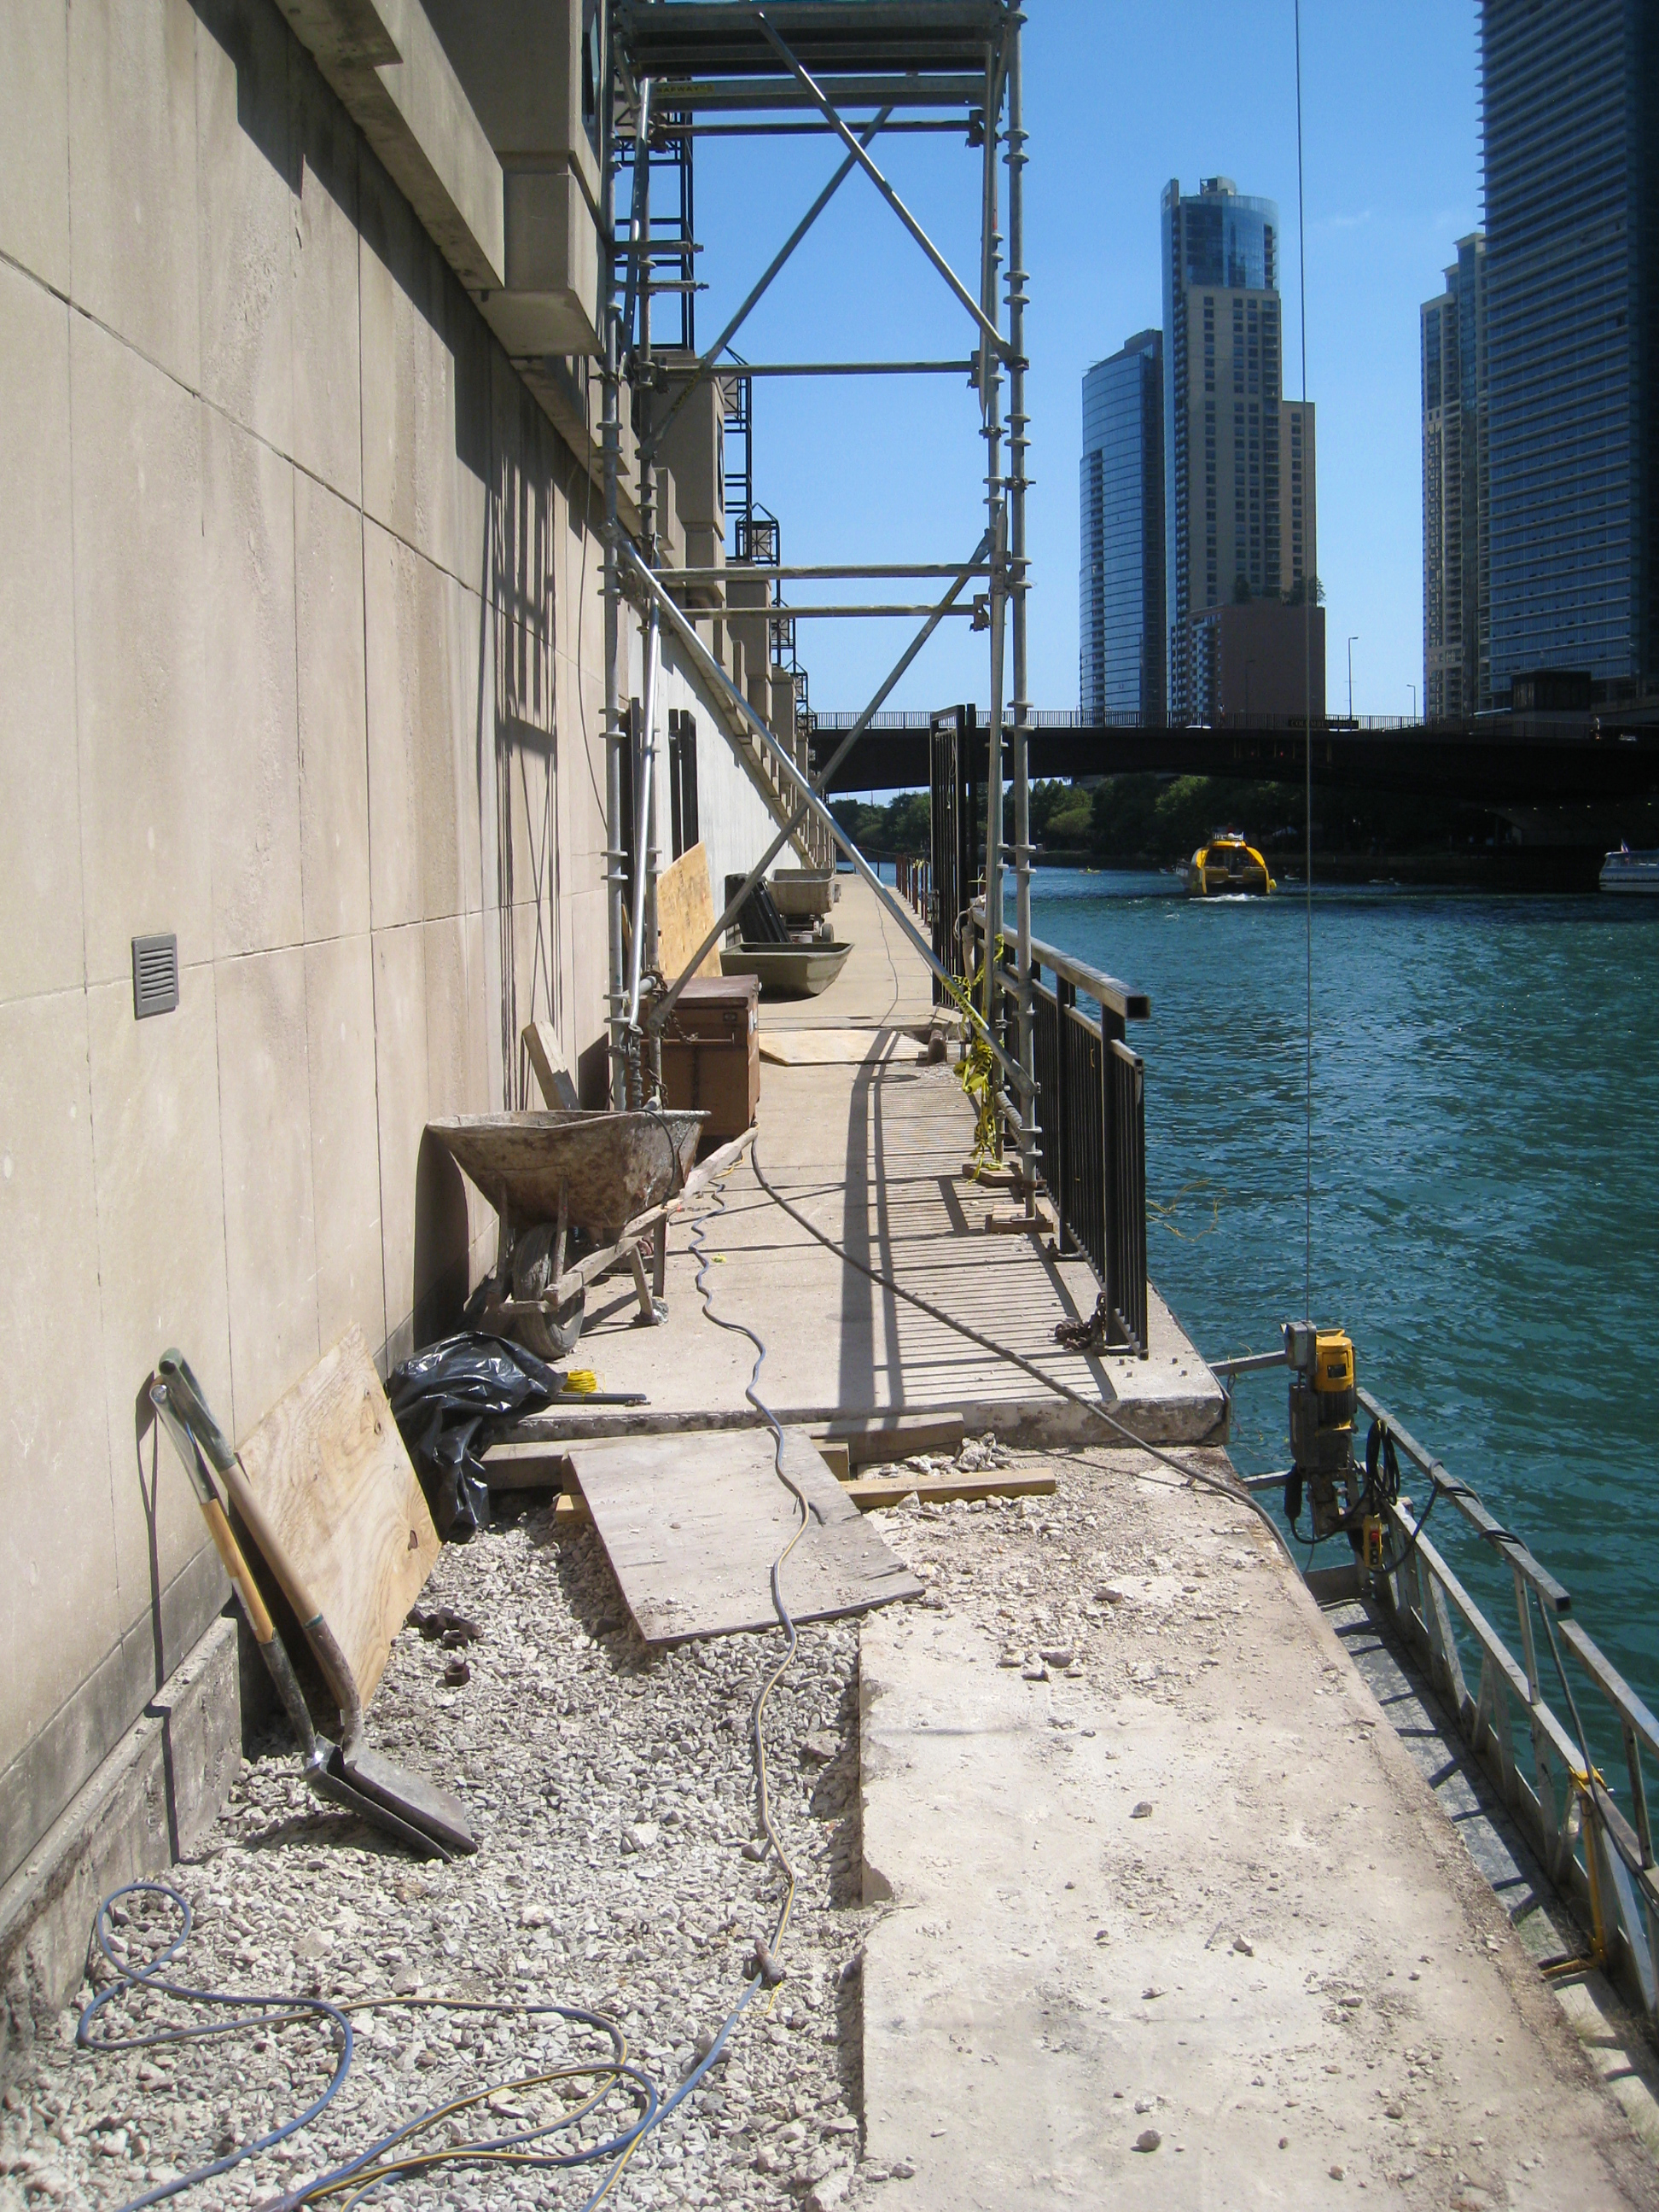 Under construction: building new stairs between the esplanade level and the boat dock